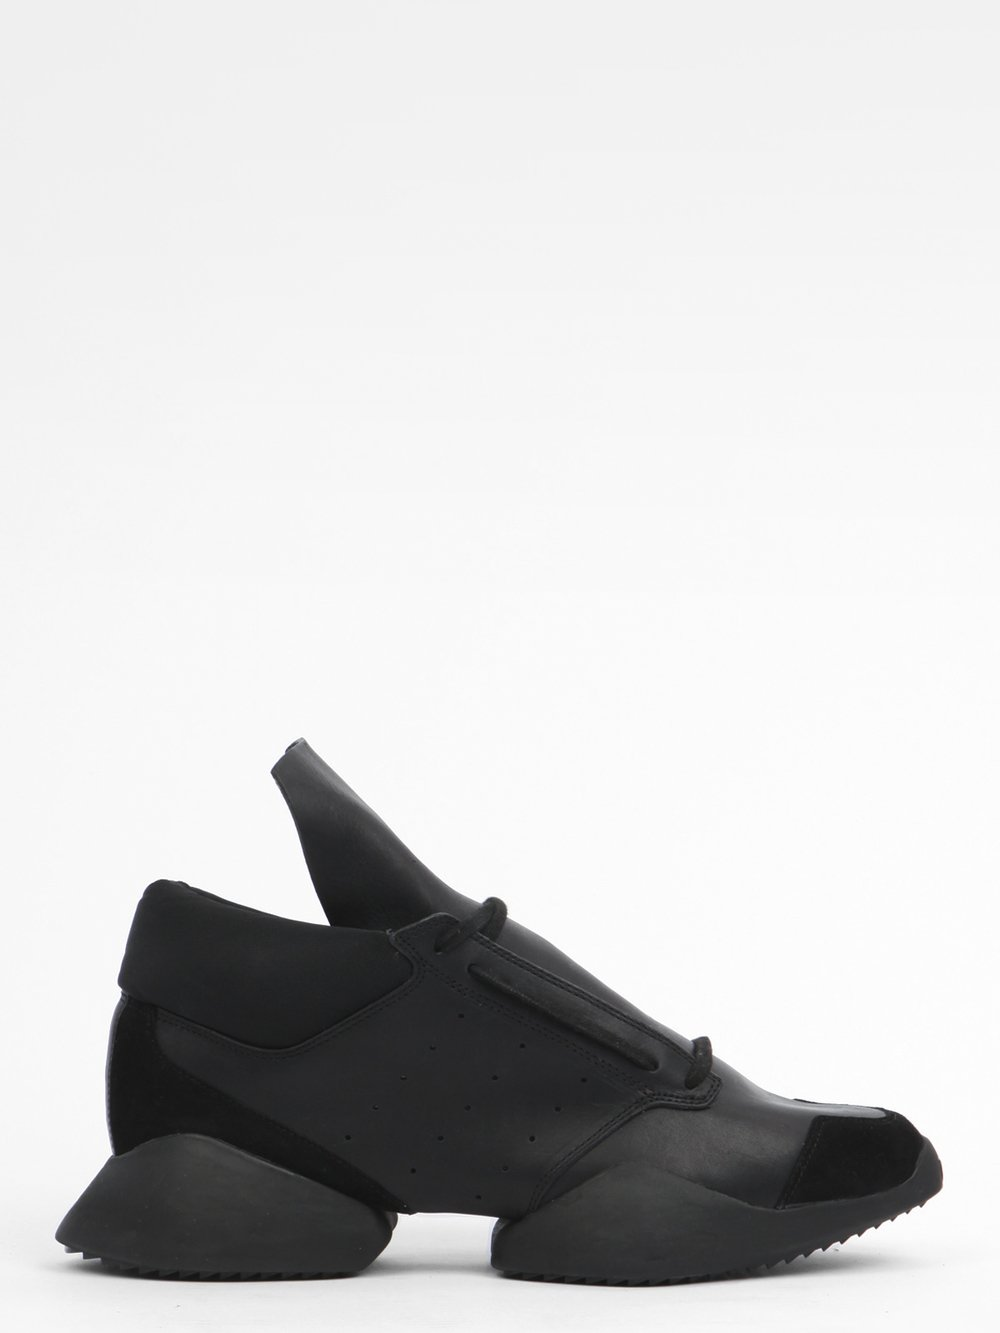 Rick Owens Drkshdw Shoes Size